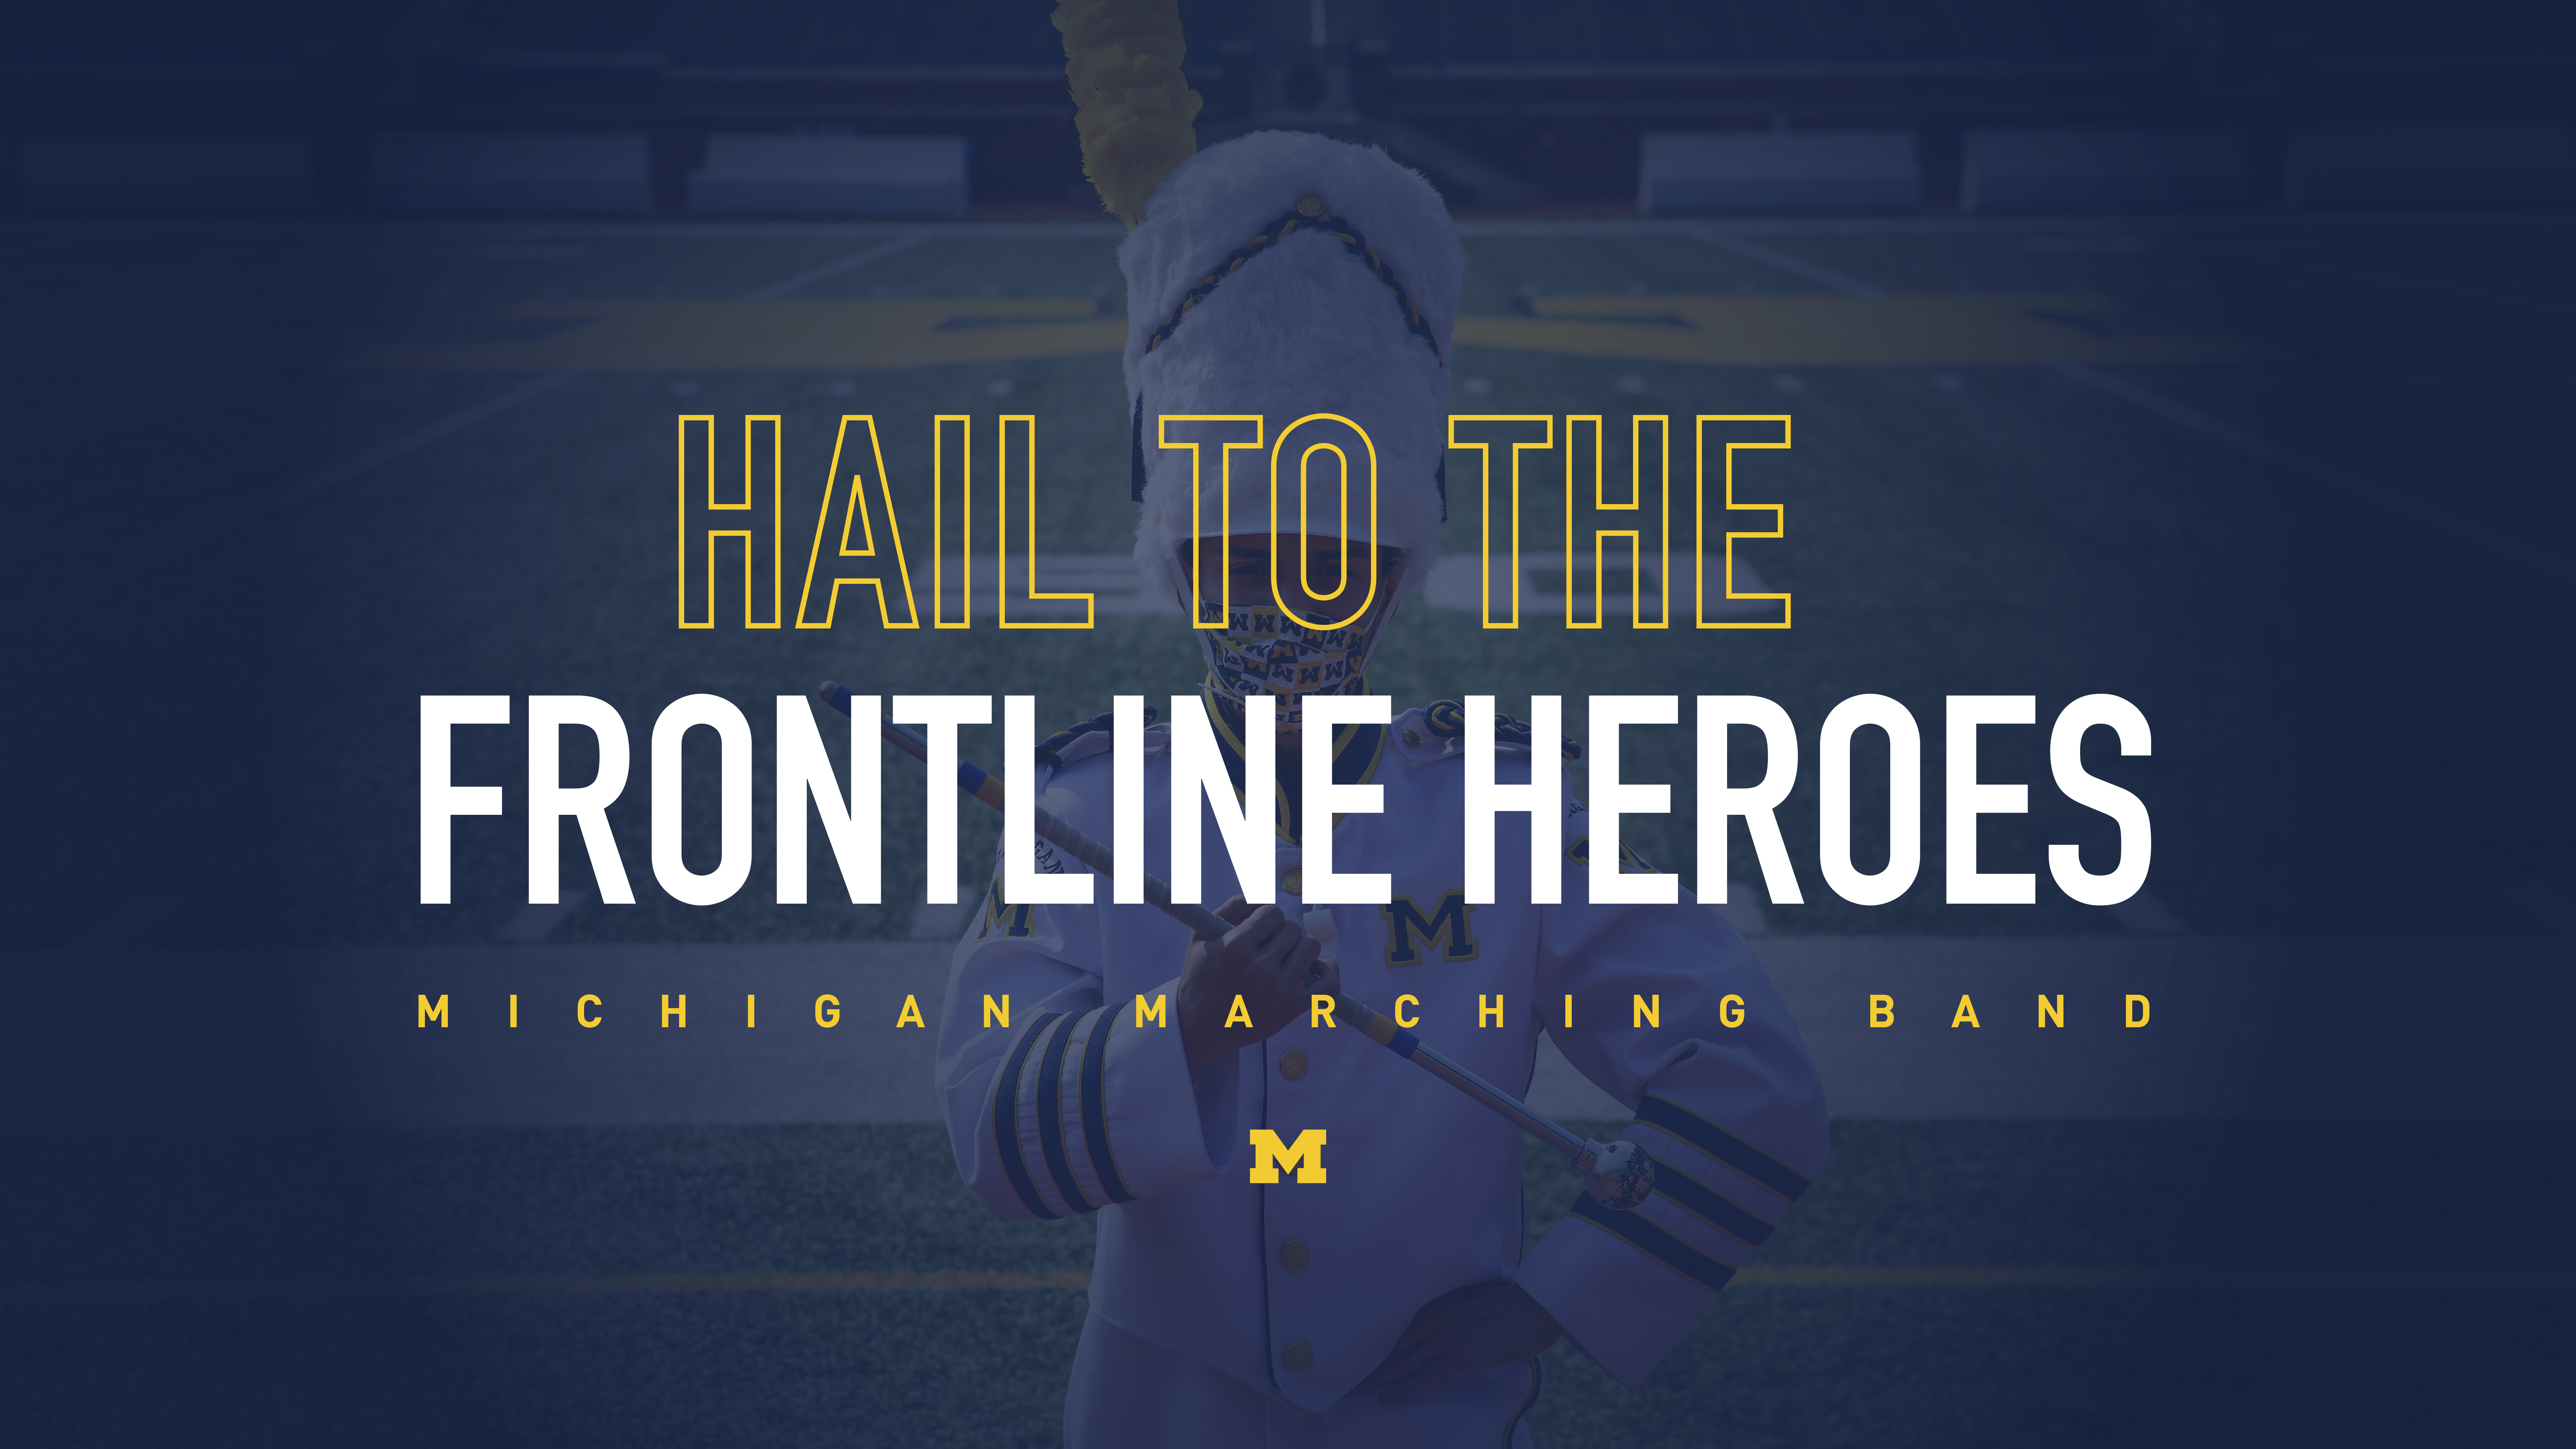 """Hail to the Frontline Heroes"" is the Michigan Marching Band's first virtual show. Graphic for image courtesy of Michigan Marching Band."